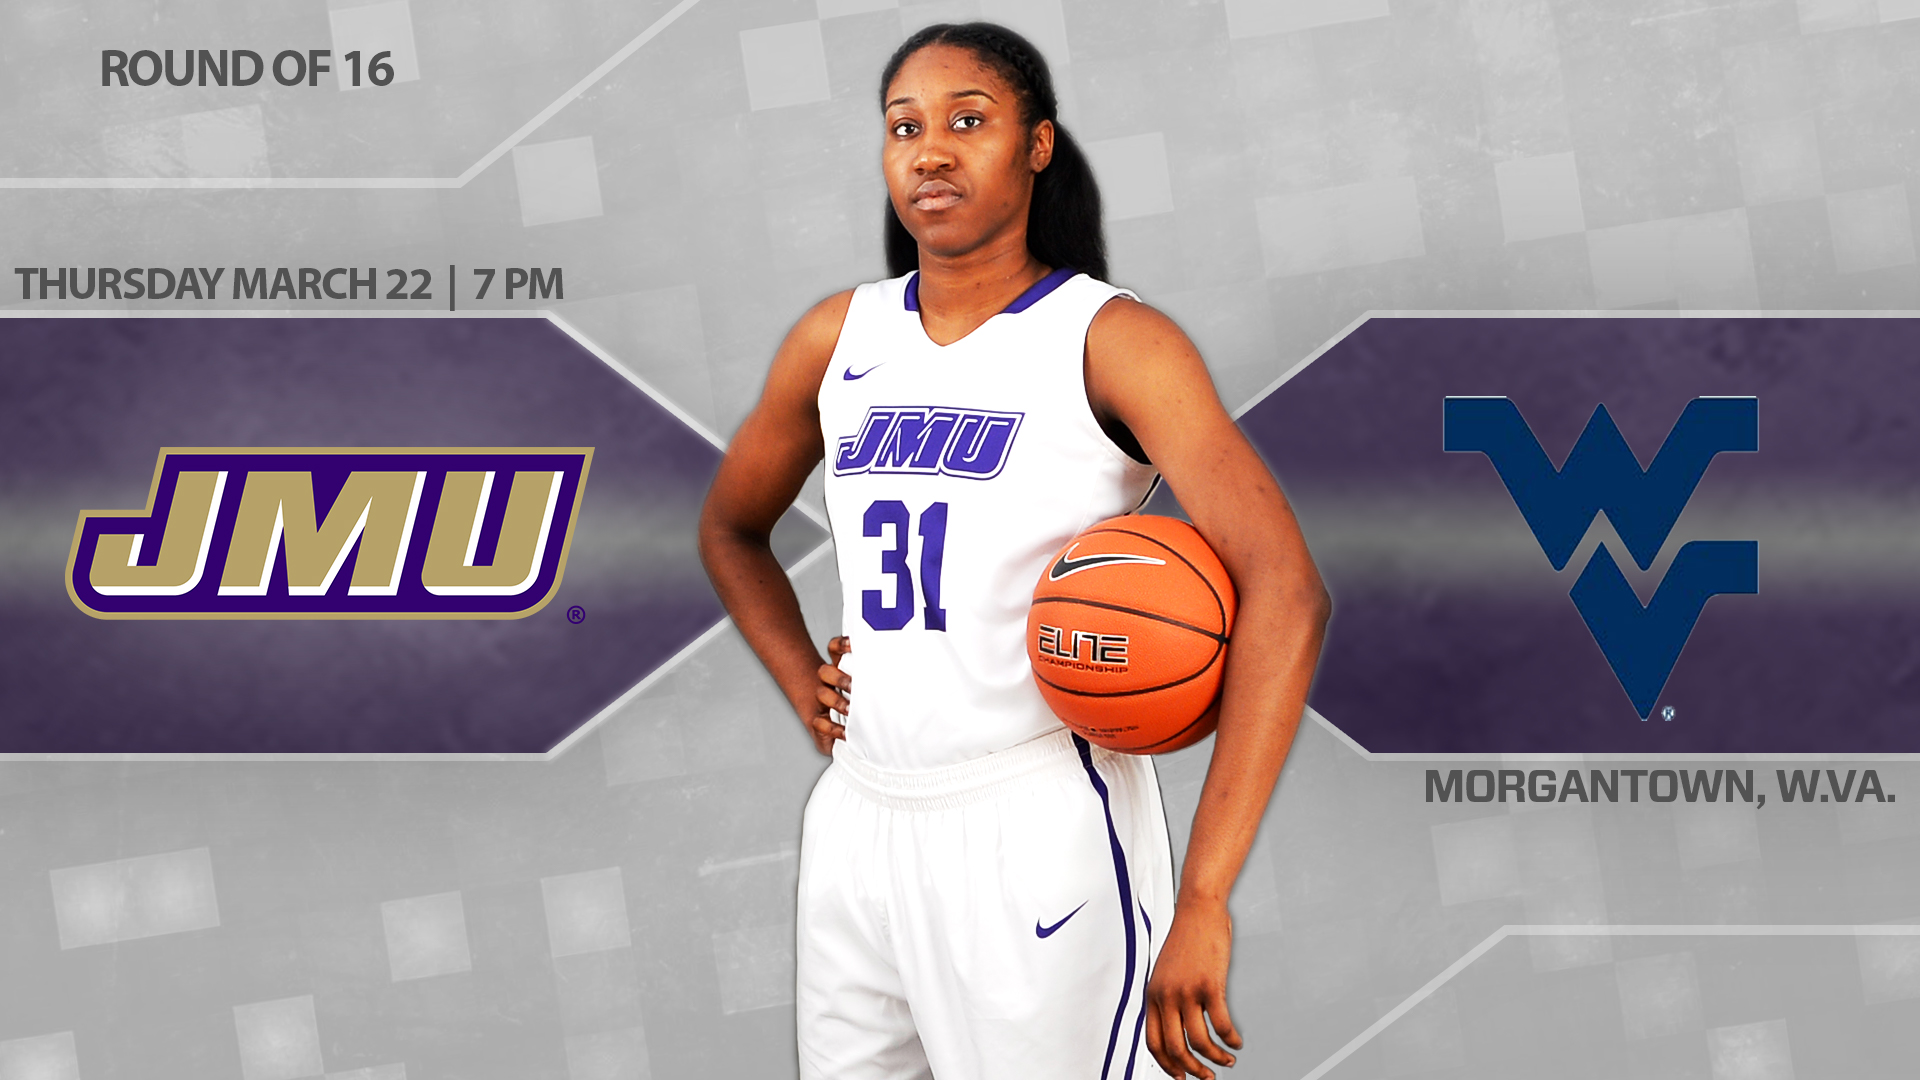 Women's Basketball: Dukes Travel to Morgantown for a WNIT Third Round Matchup)